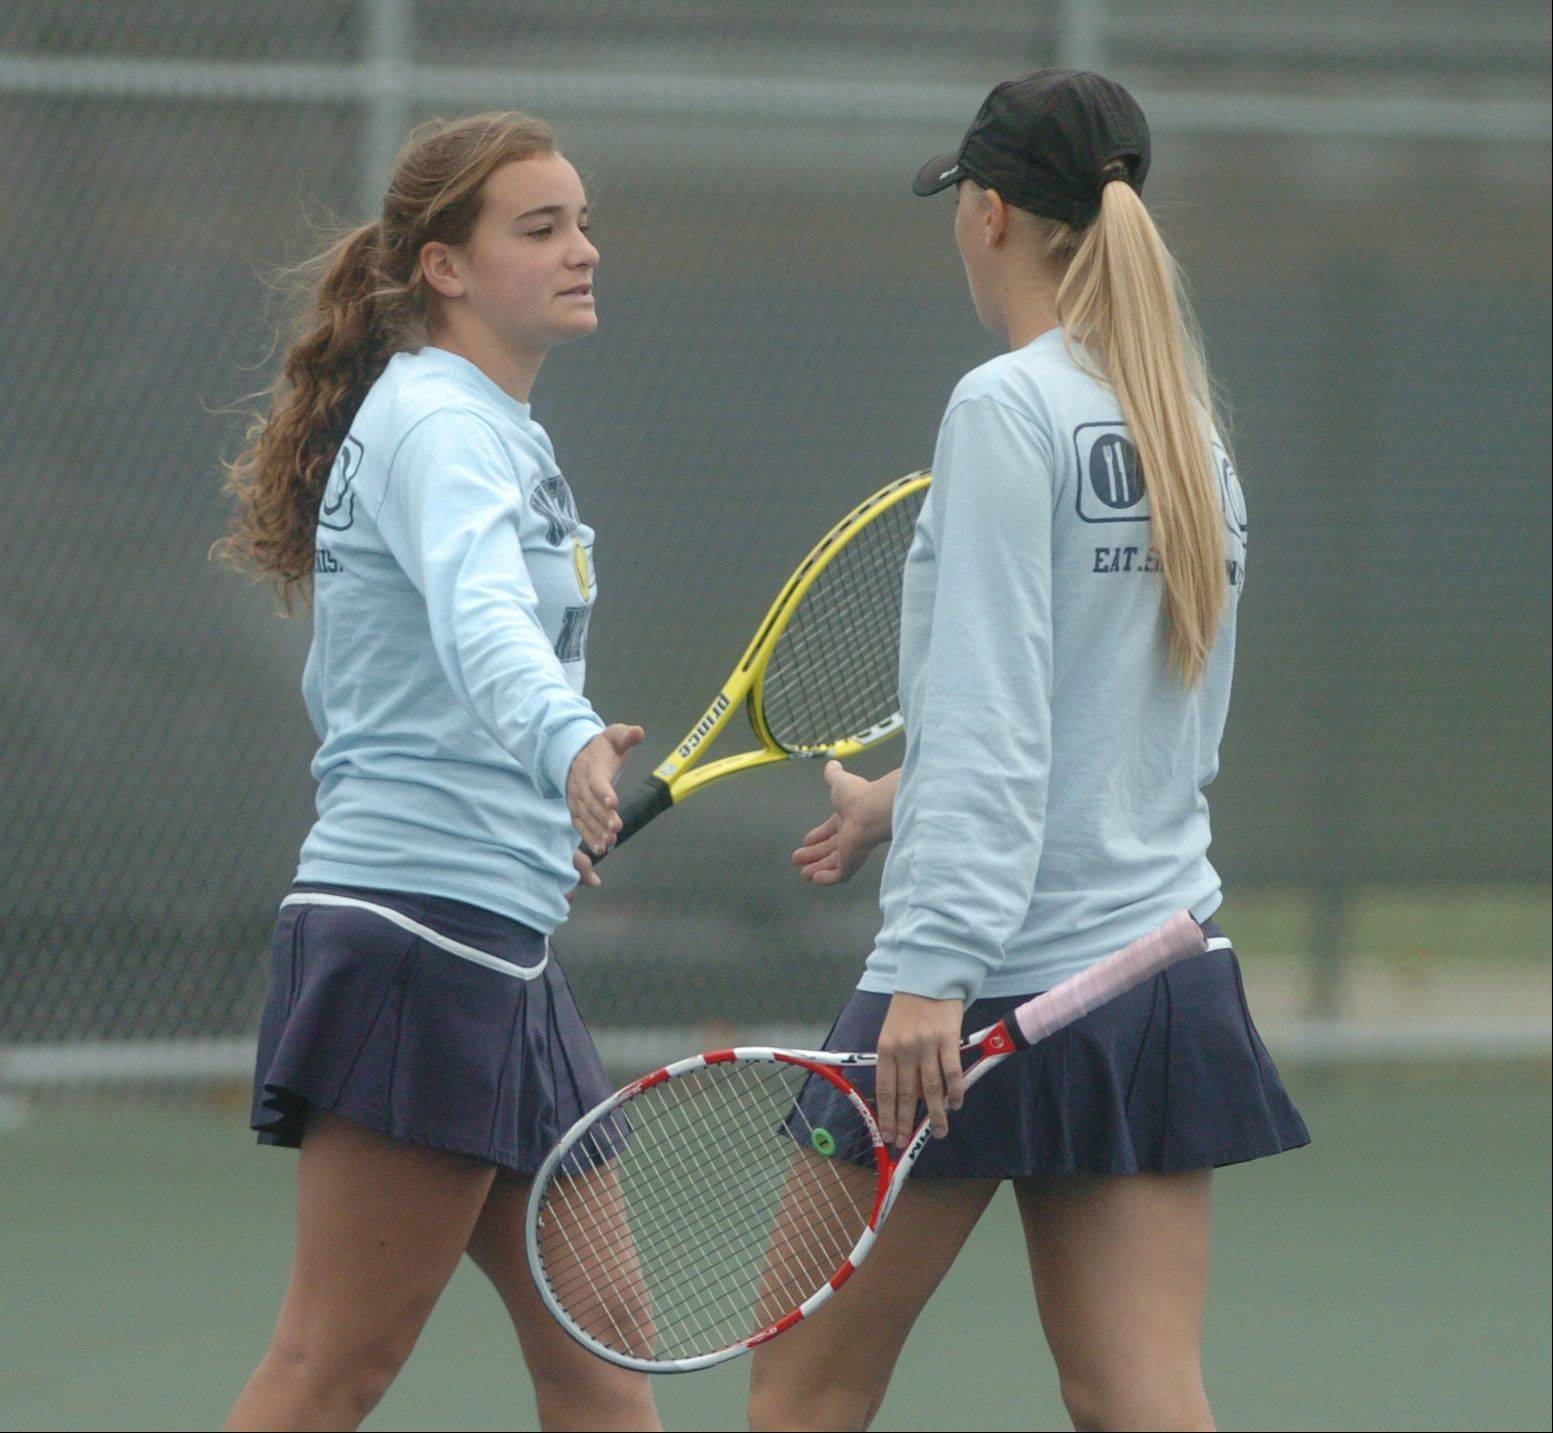 Tiffany Oken,left, and Kayla Maxson slap hands during a challengeing match against Naperville Central. This took place during the Naperville North girls tennis sectional at Naperville North High School Saturday.